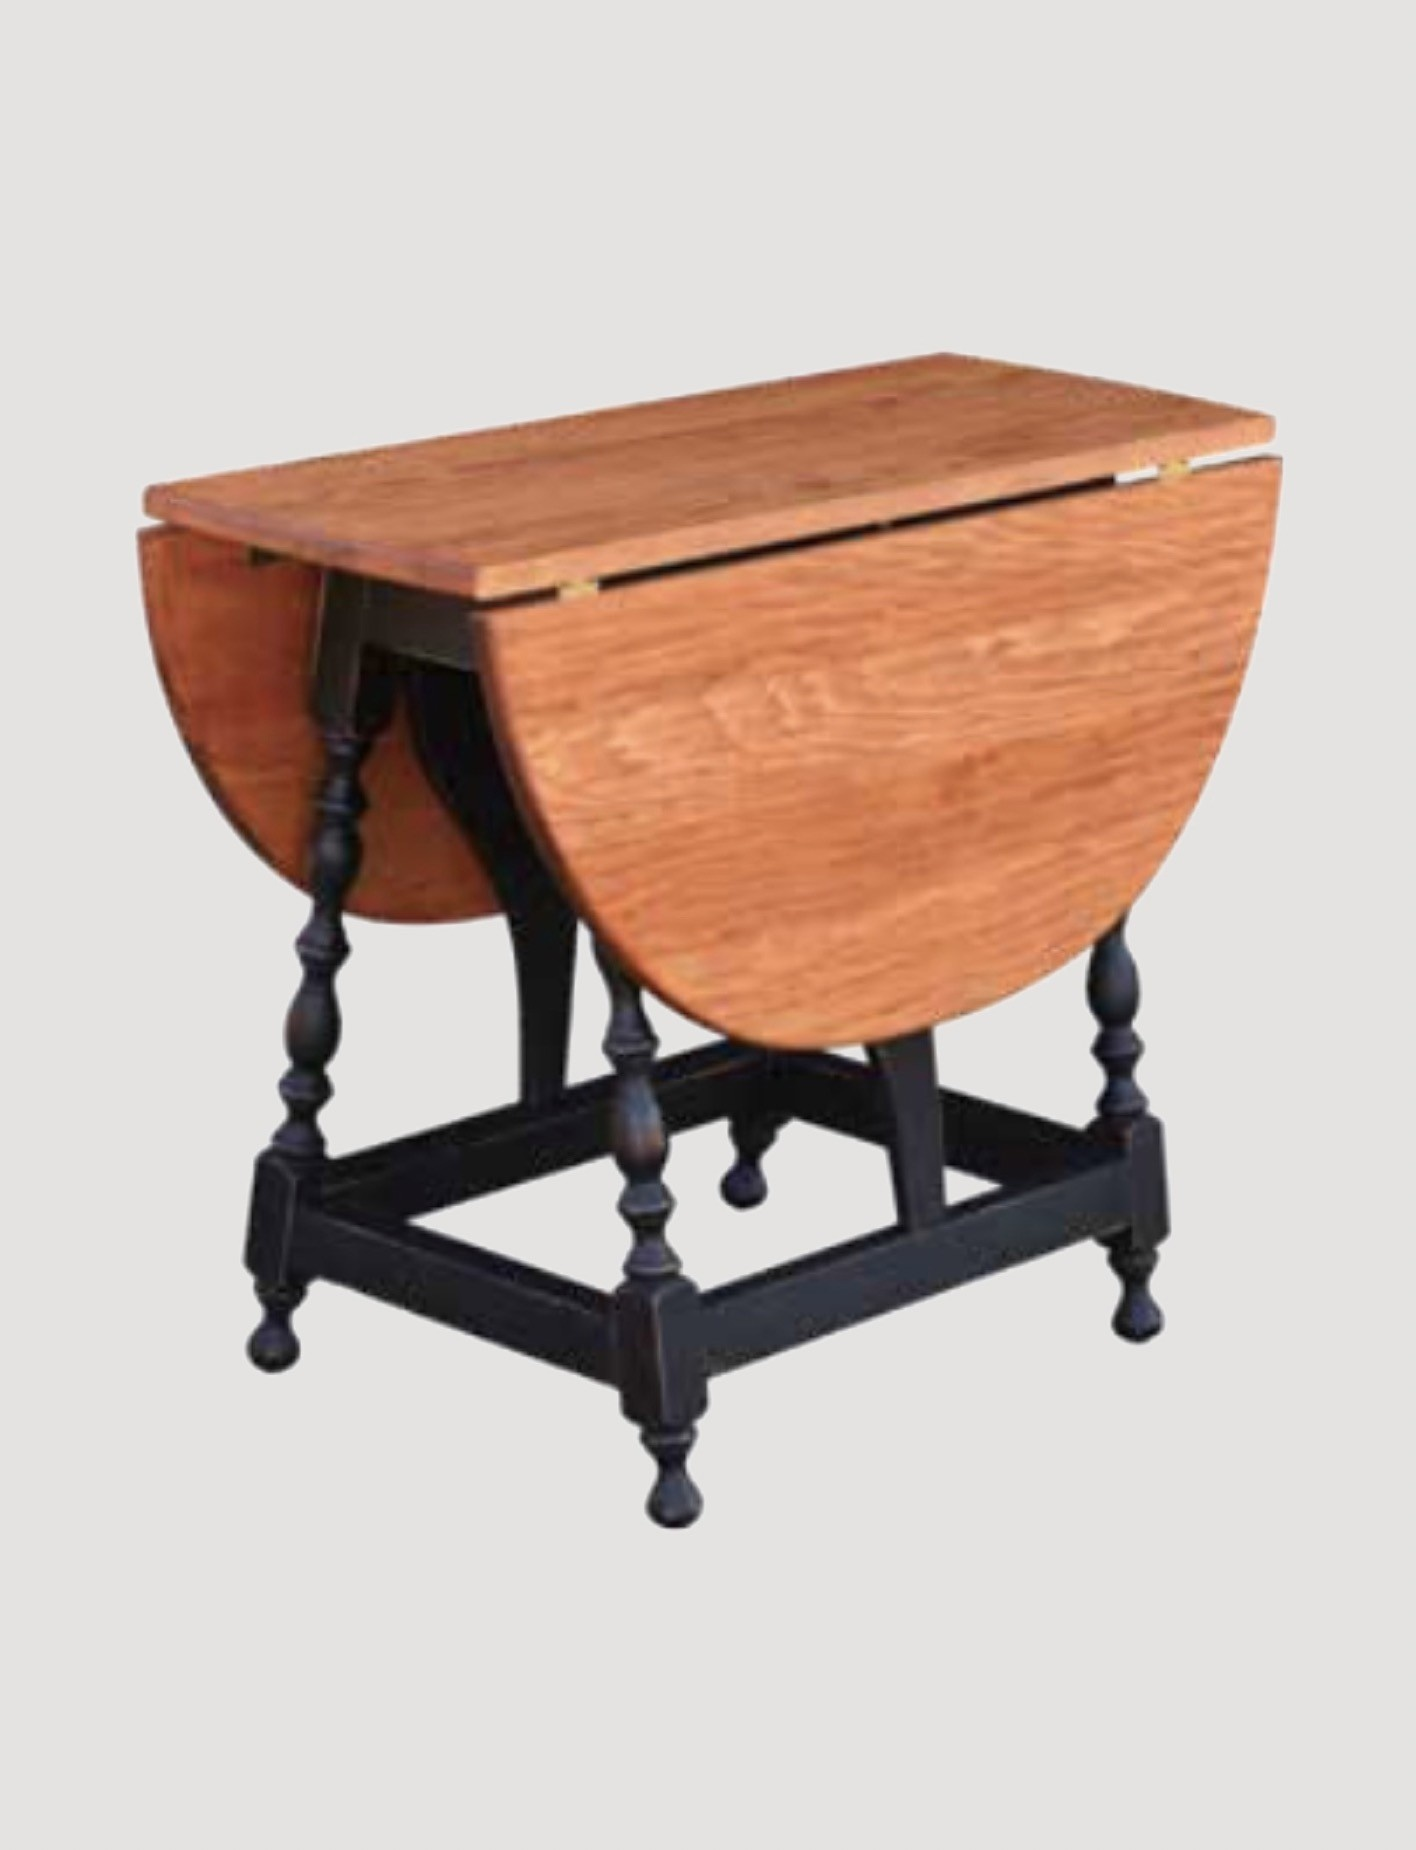 Primitive Designs Butterfly Table with Pine Top & Black Rubbed Legs